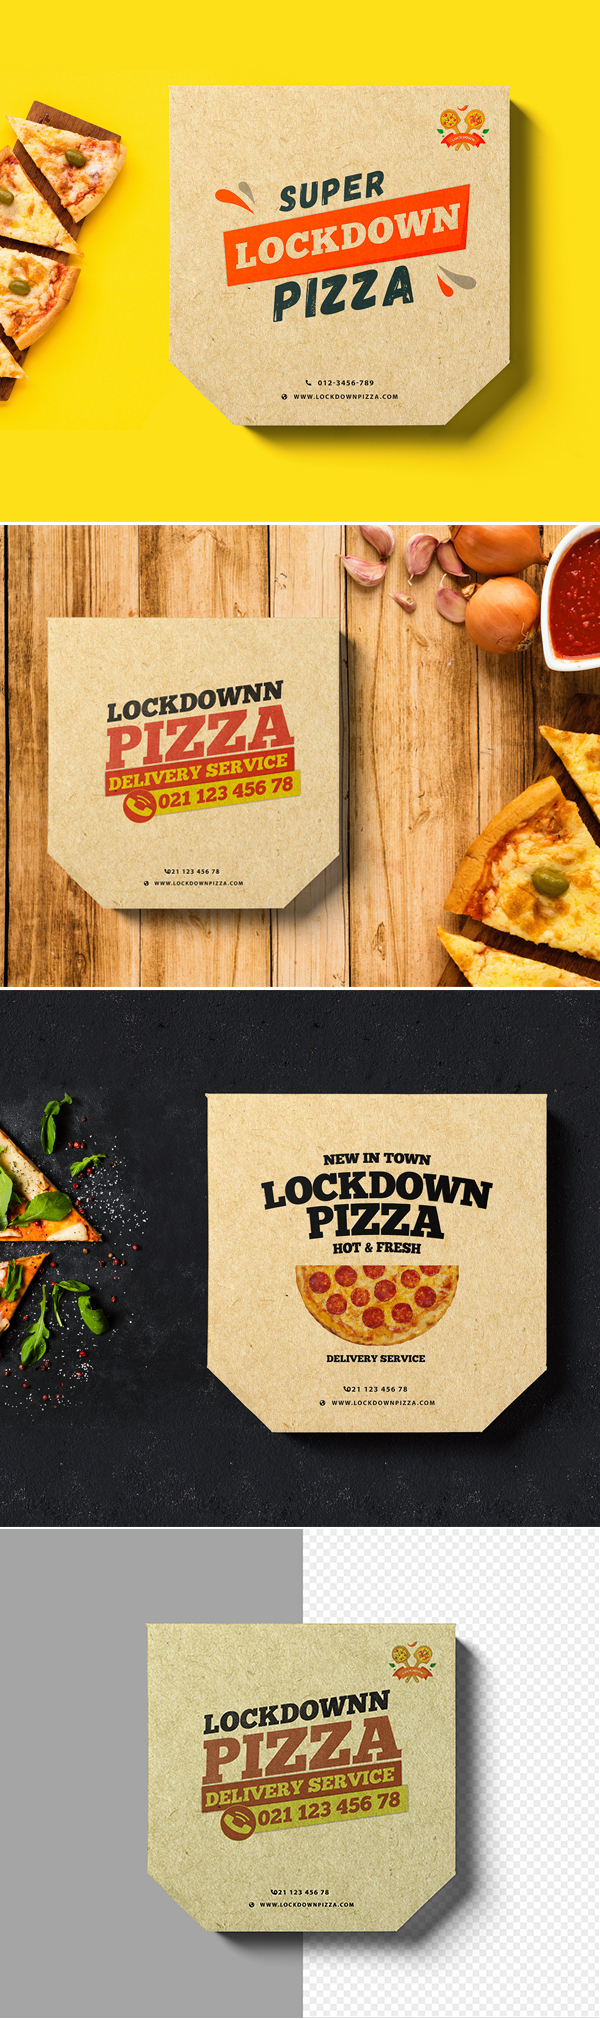 Free Pizza Box Mockup PSD